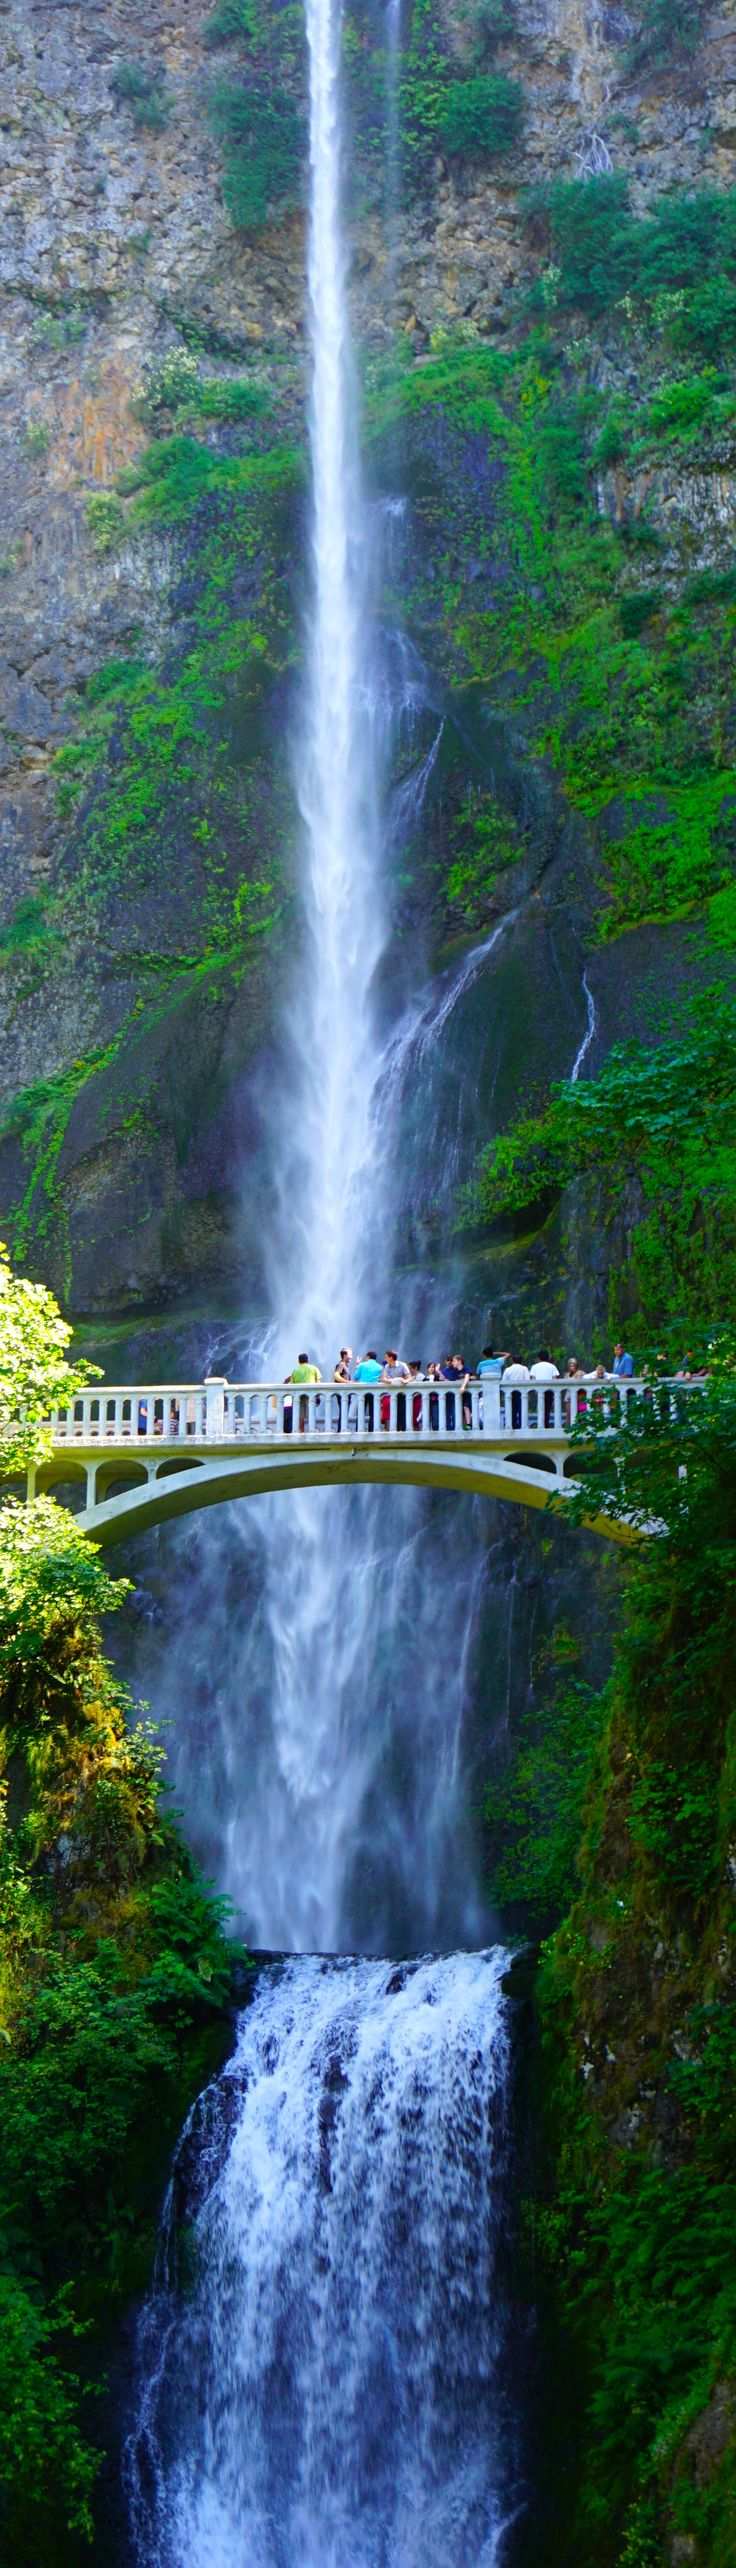 Multnomah Falls, Oregon, US Like or repin is amazing. Check out All My Love by…